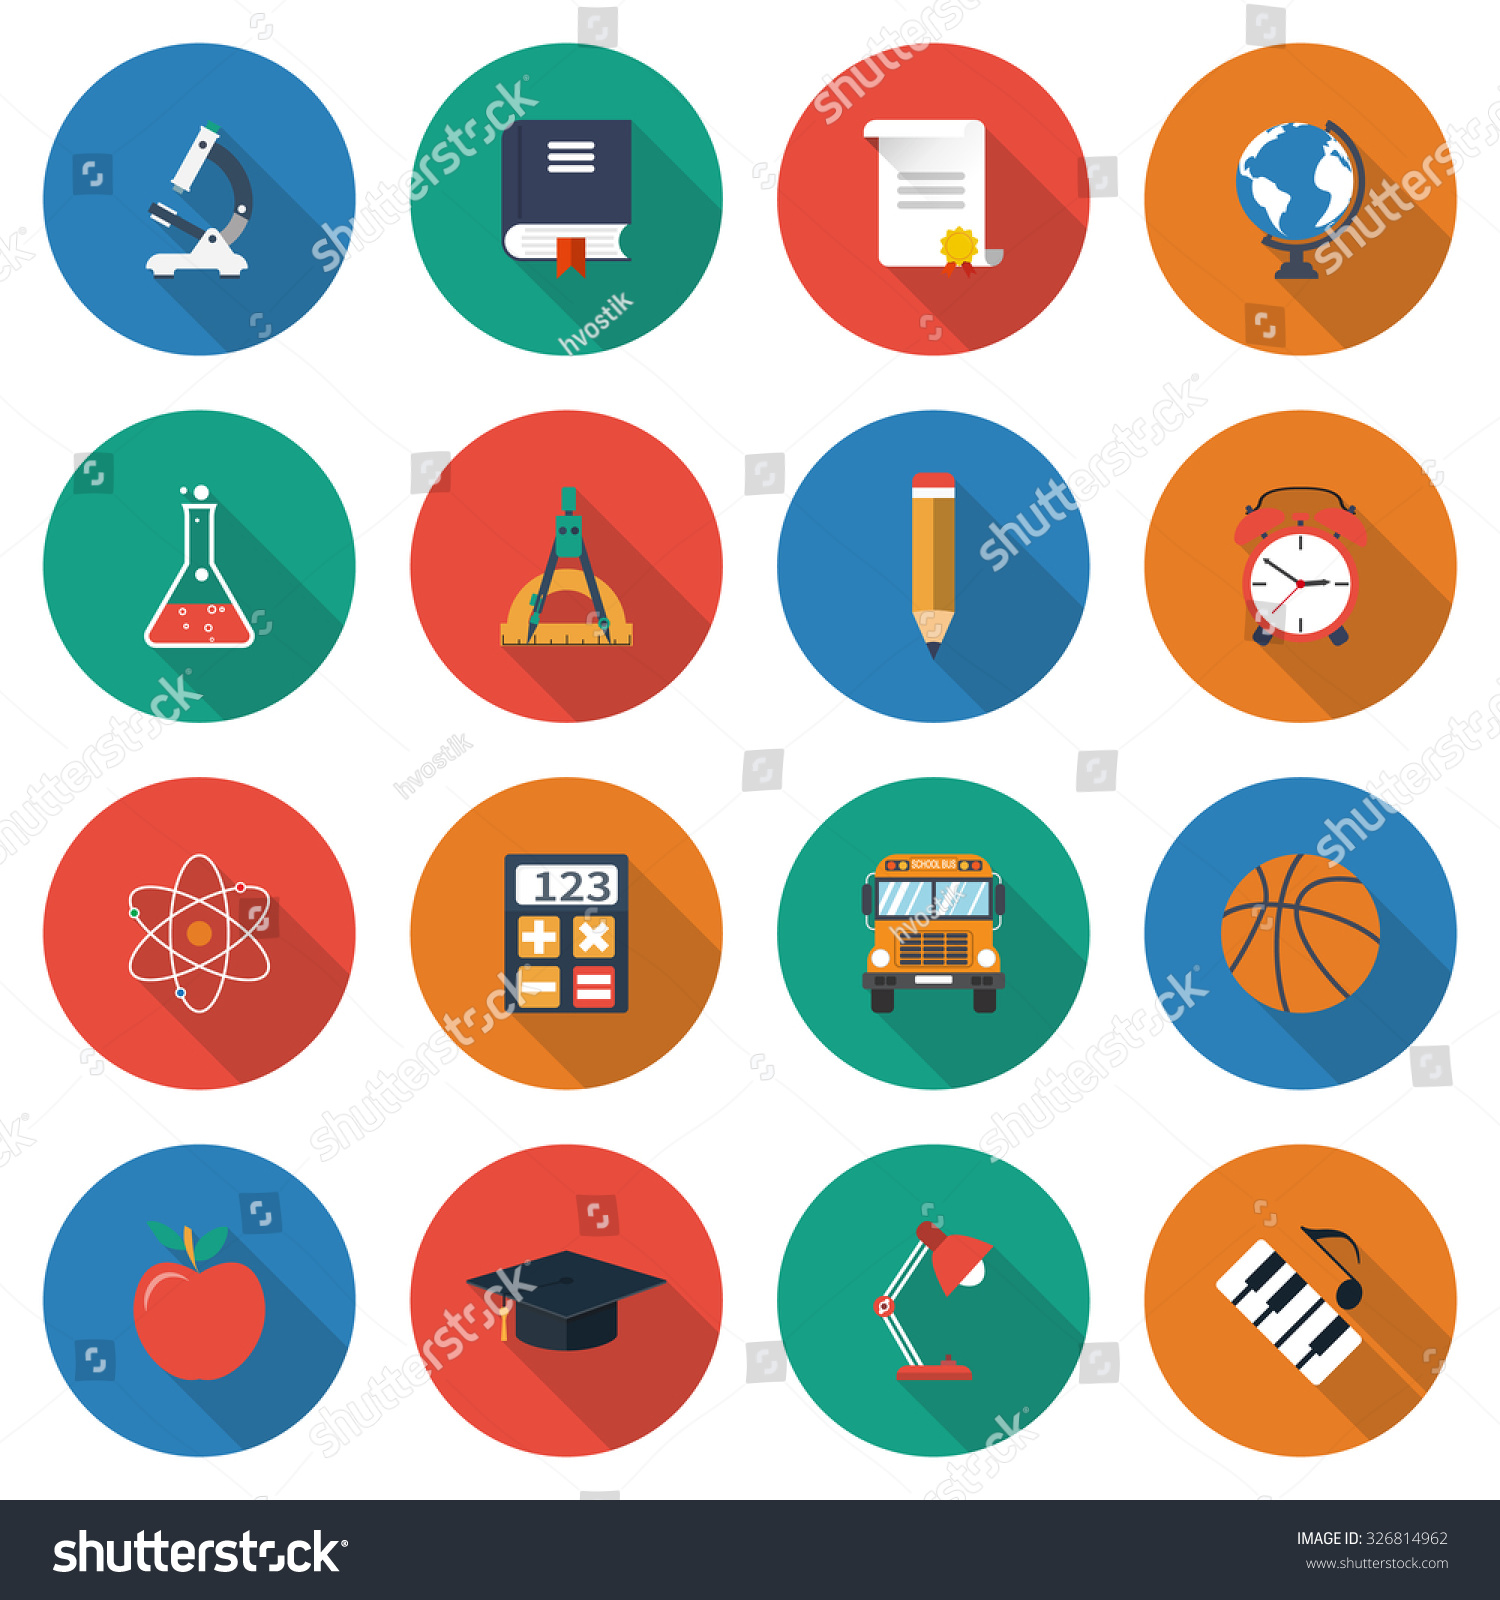 Education icons collection elements symbols learning stock vector education icons collection of elements and symbols of learning education knowledge colorful biocorpaavc Gallery